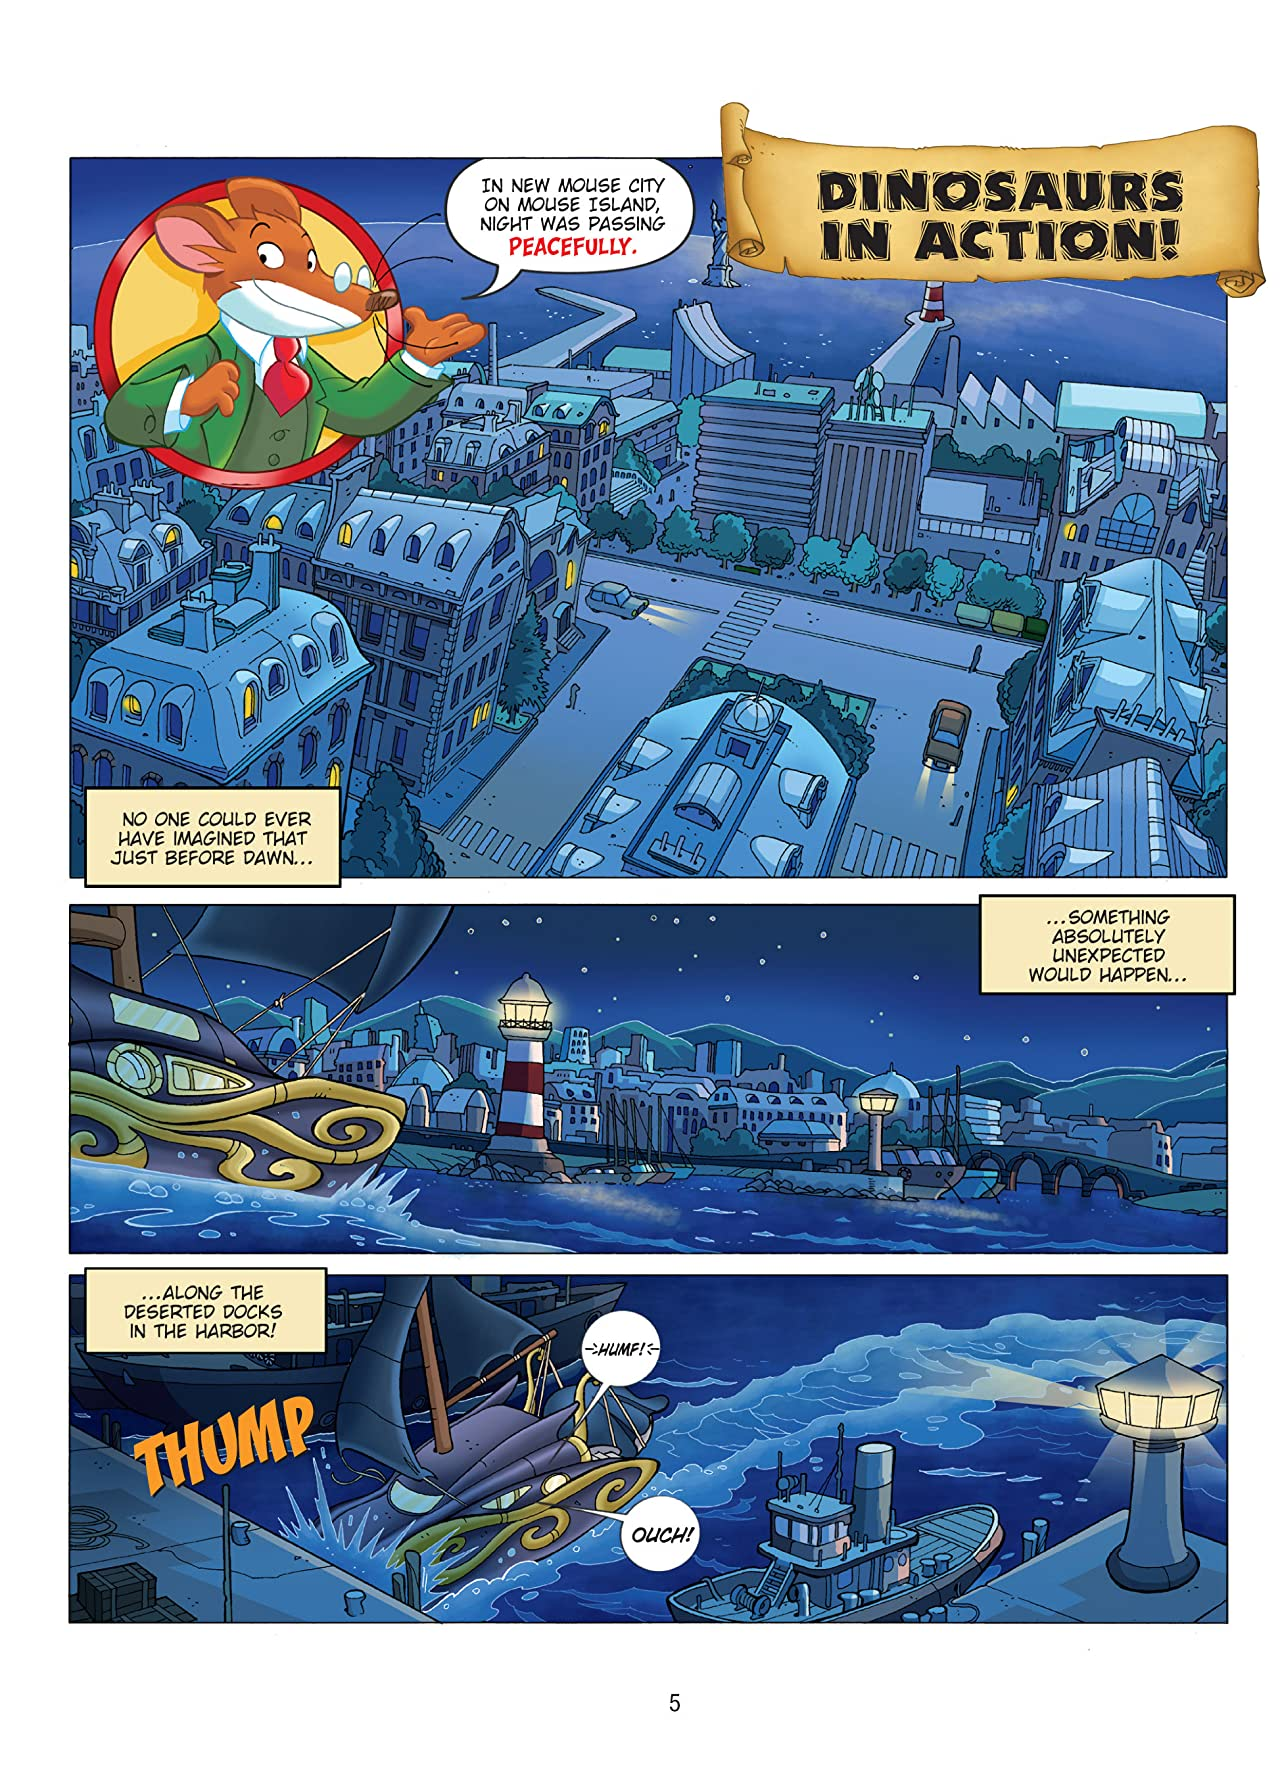 Geronimo Stilton Vol. 7: Dinosaurs In Action Preview